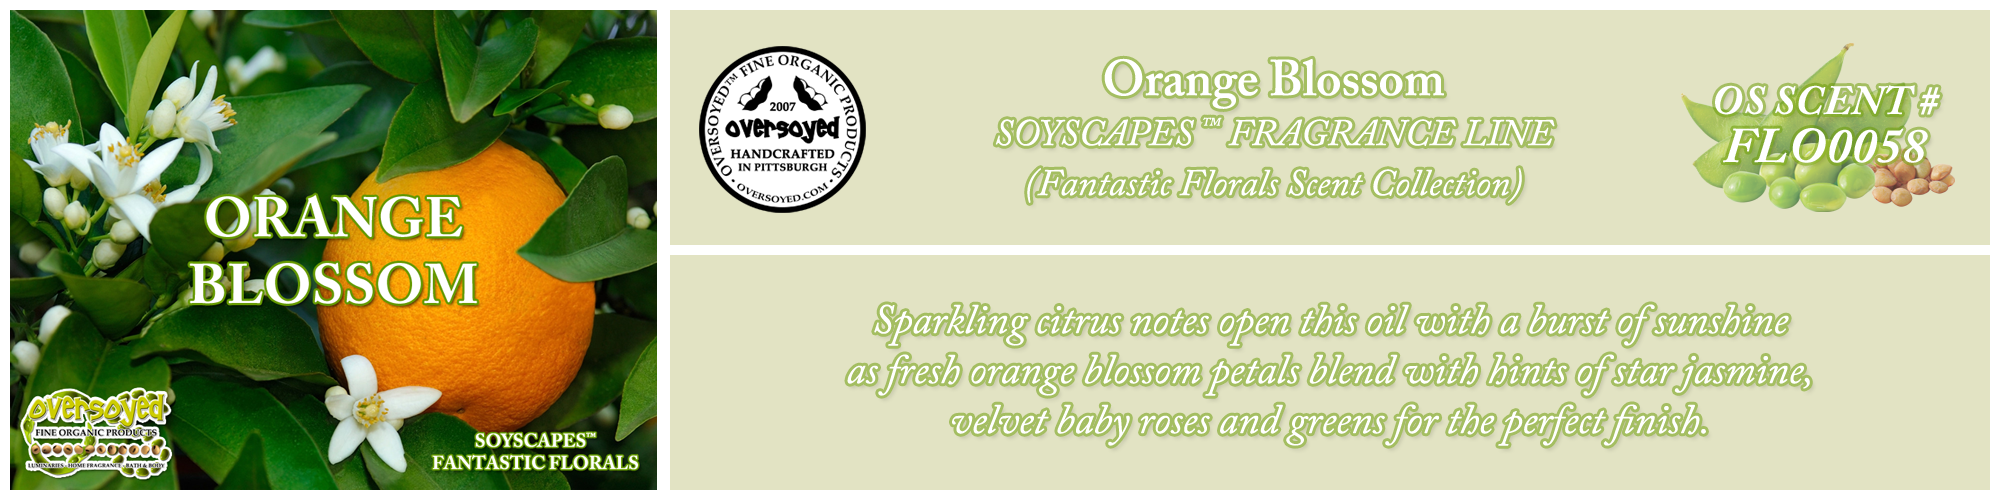 Orange Blossom Handcrafted Products Collection